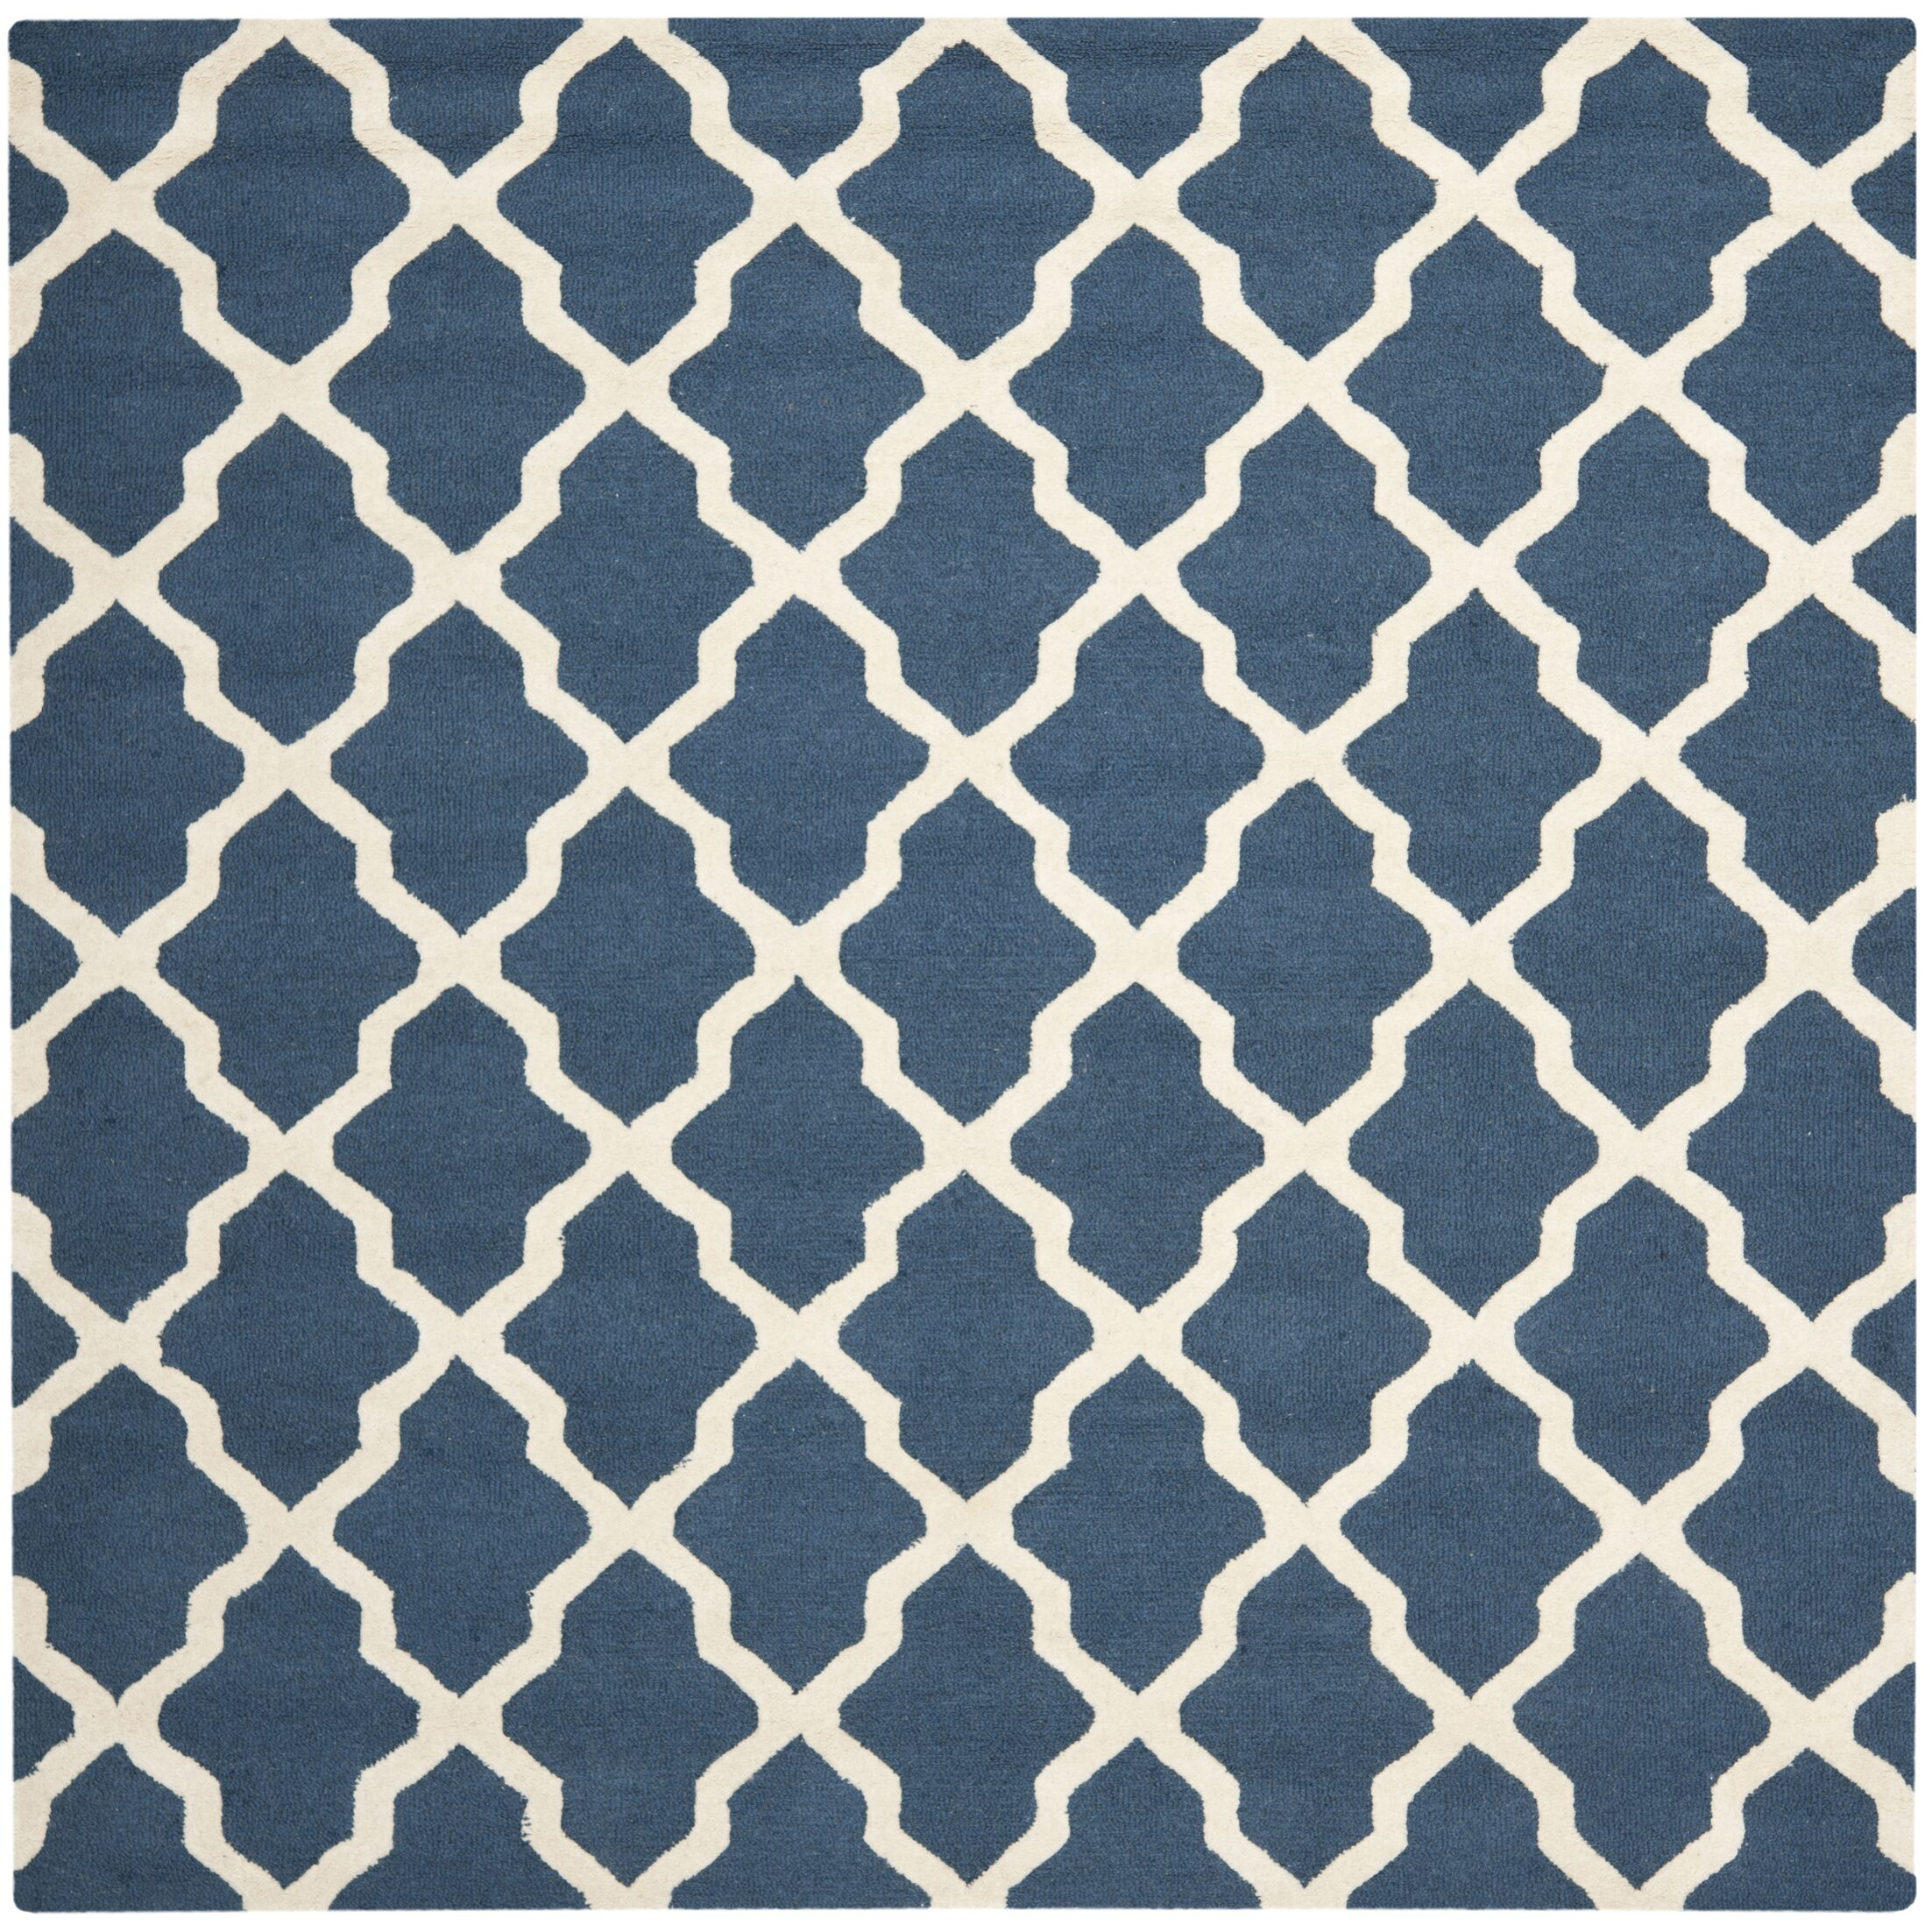 Charlenne Lattice Handand-Tufted Wool Navy Blue Area Rug Rug Size: Square 8'